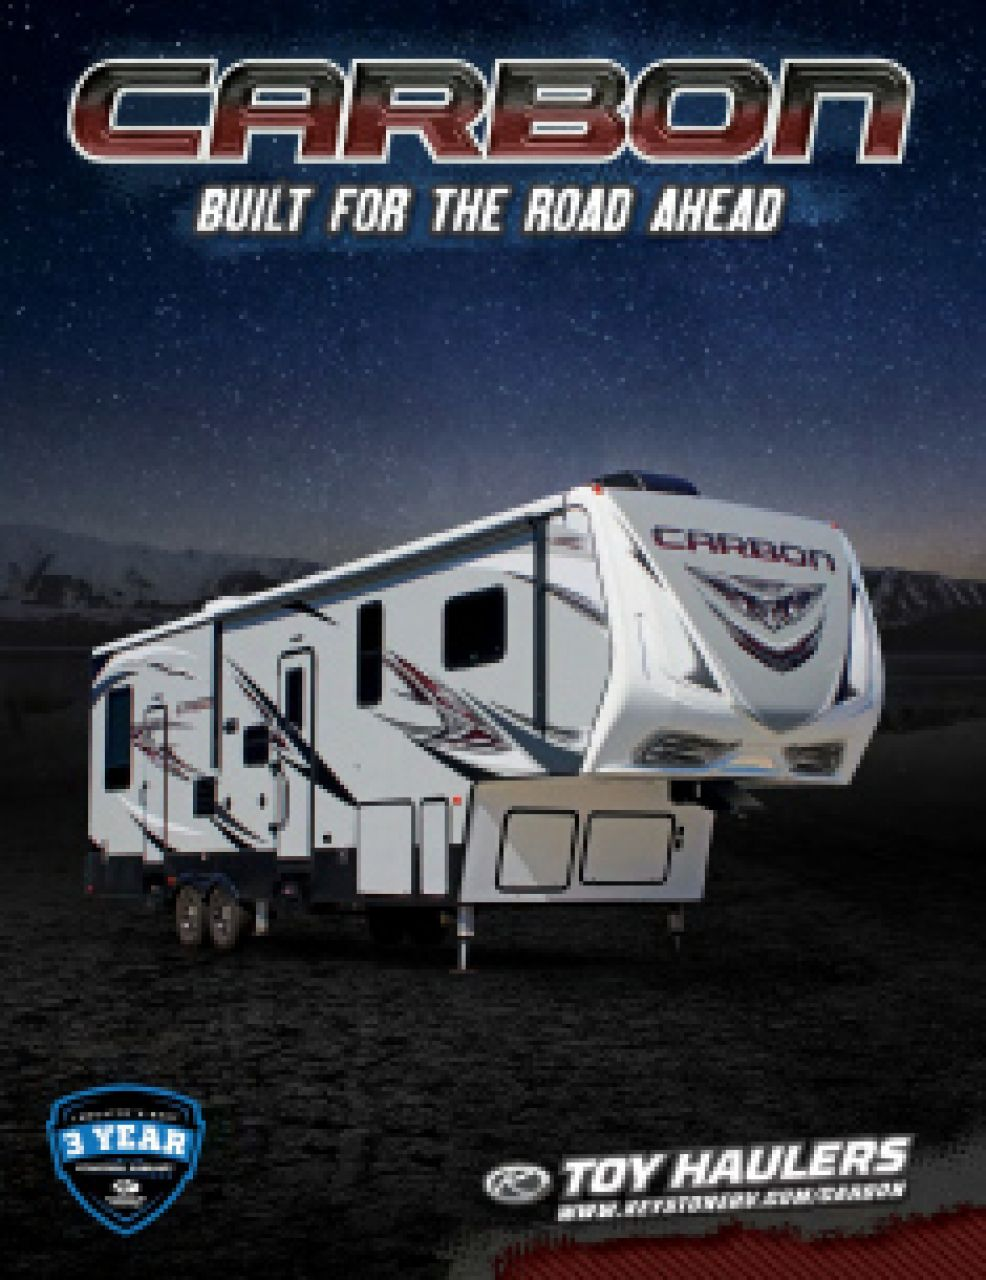 2018 Keystone Carbon RV Brochure Cover